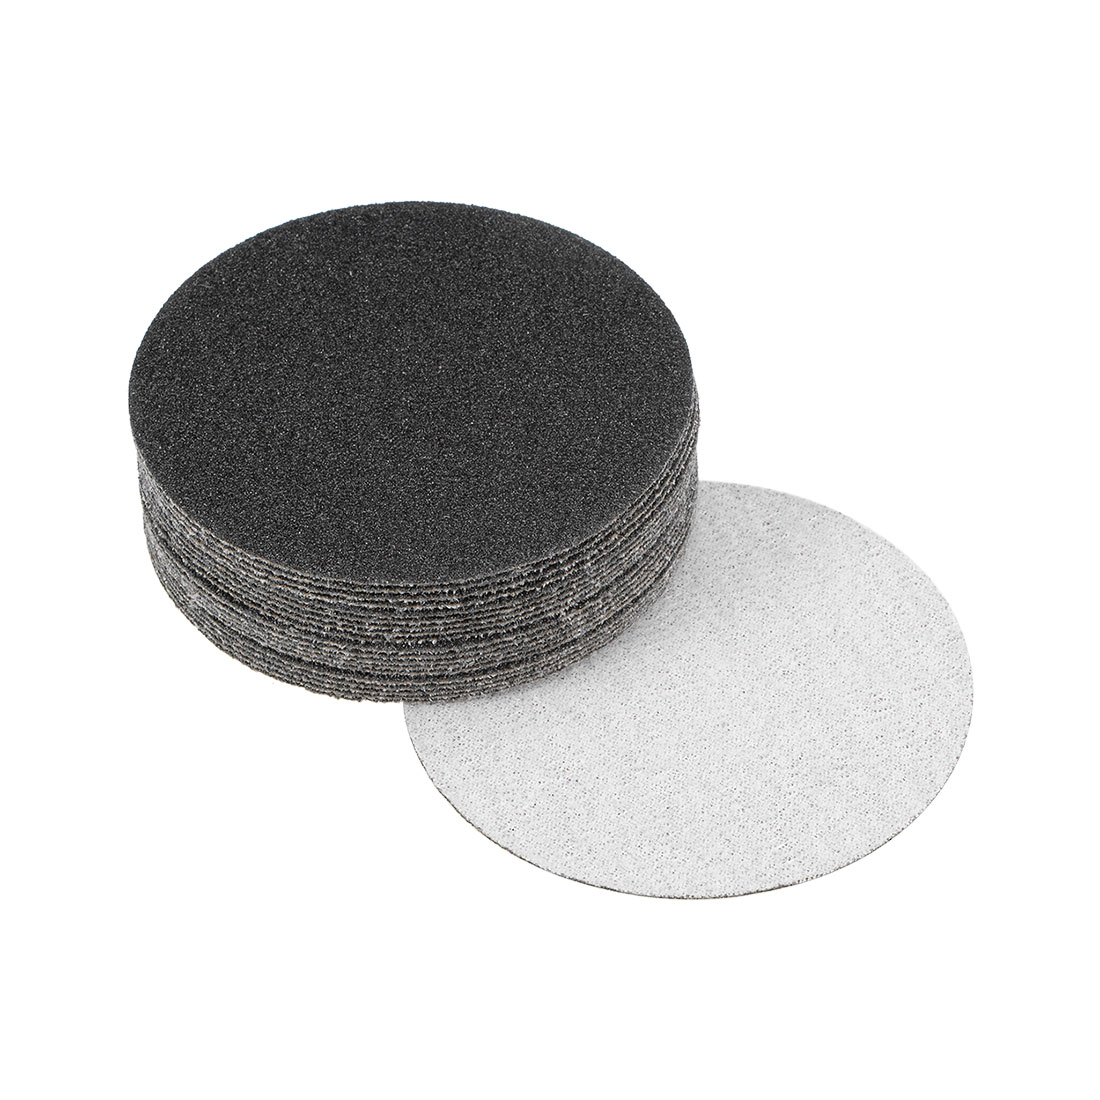 3 inch Wet Dry Discs 80 Grit Hook and Loop Sanding Disc Silicon Carbide 20pcs